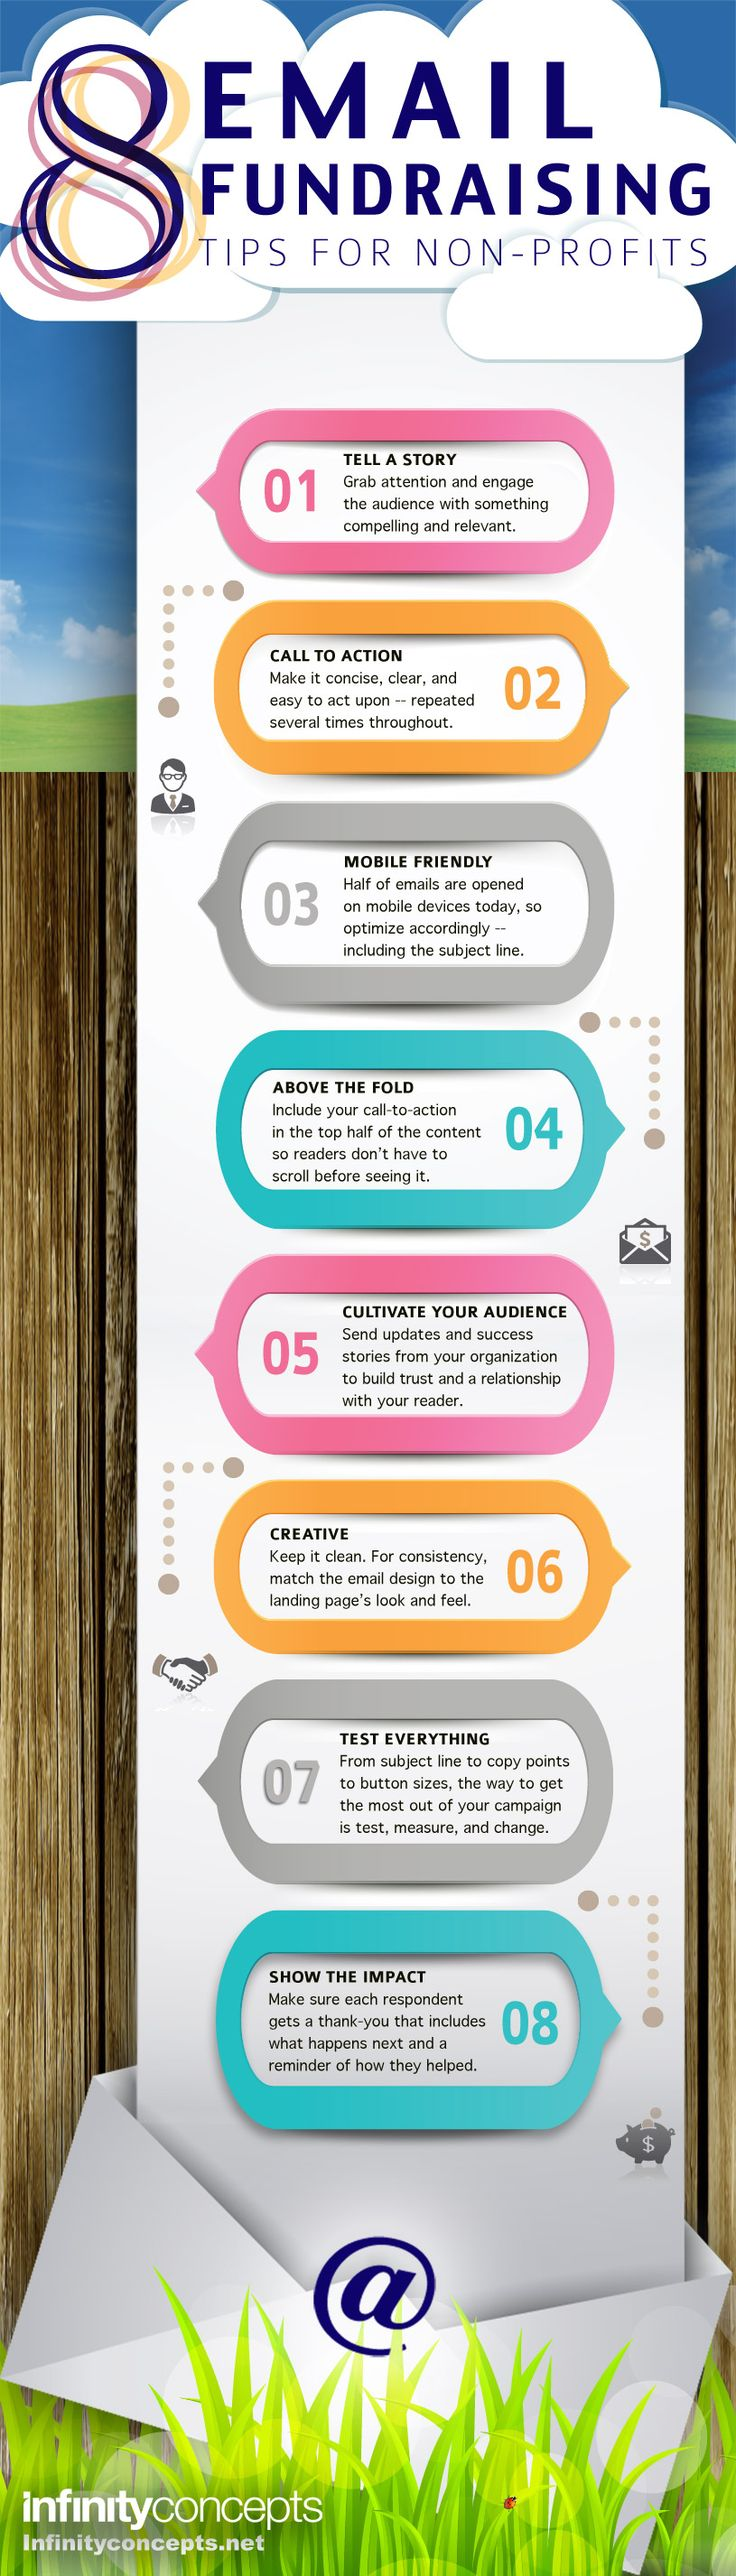 "8 EMAIL FUNDRAISING TIPS - #Infographic by Tom Perrault - 1) Tell a story 2) Call to action 3) Mobile friendly and 8) Show the impact - Thank each respondent and remind them of how they helped."" Pins for Non-profit Development: https://www.pinterest.com/addfreesources/nonprofit-development/"